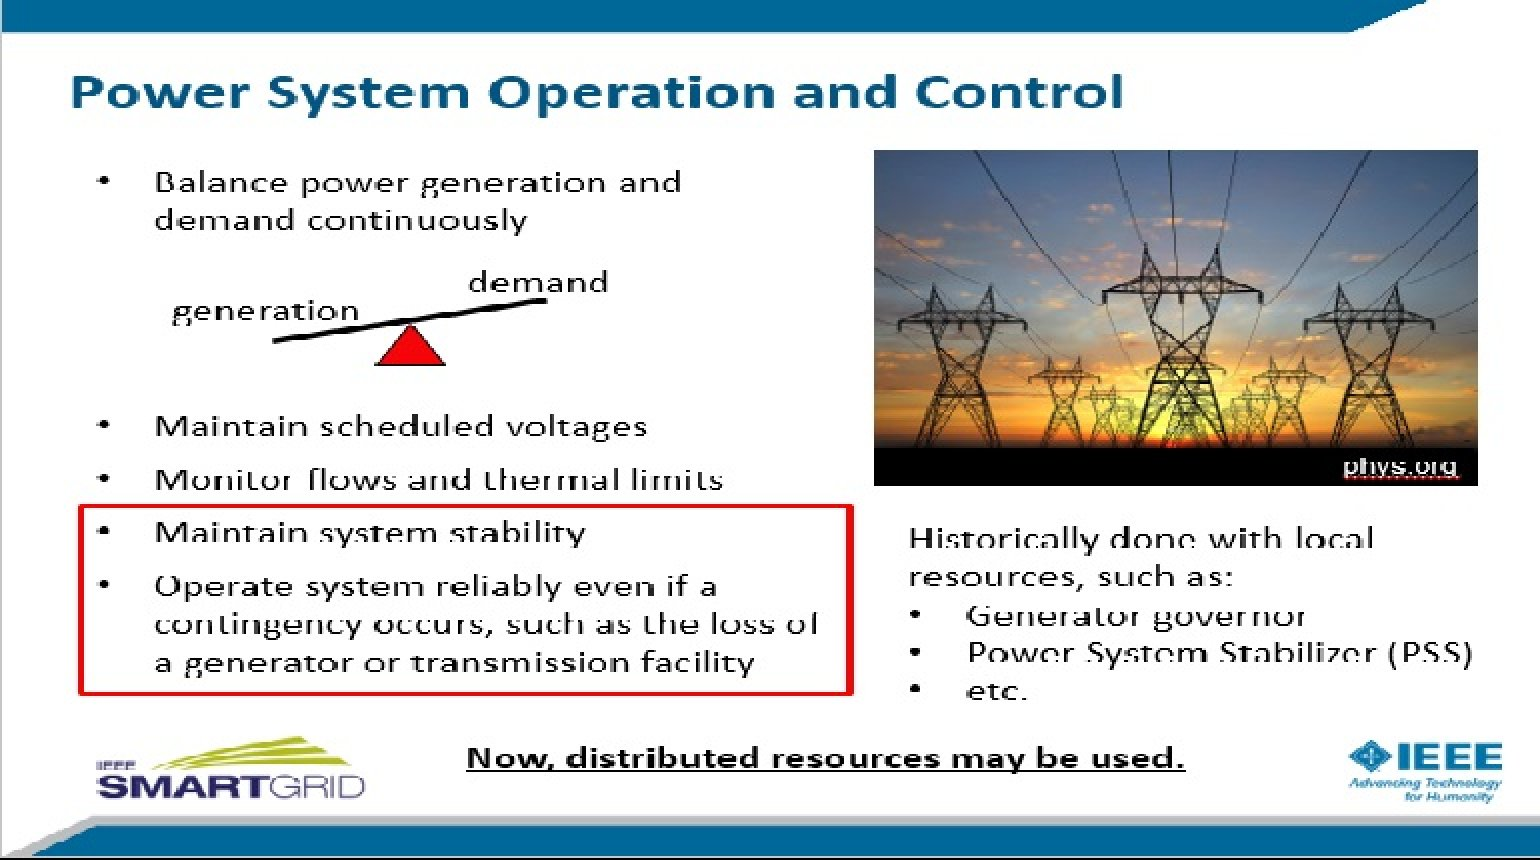 Distributed Control for Improving Power System Stability presented by David Copp